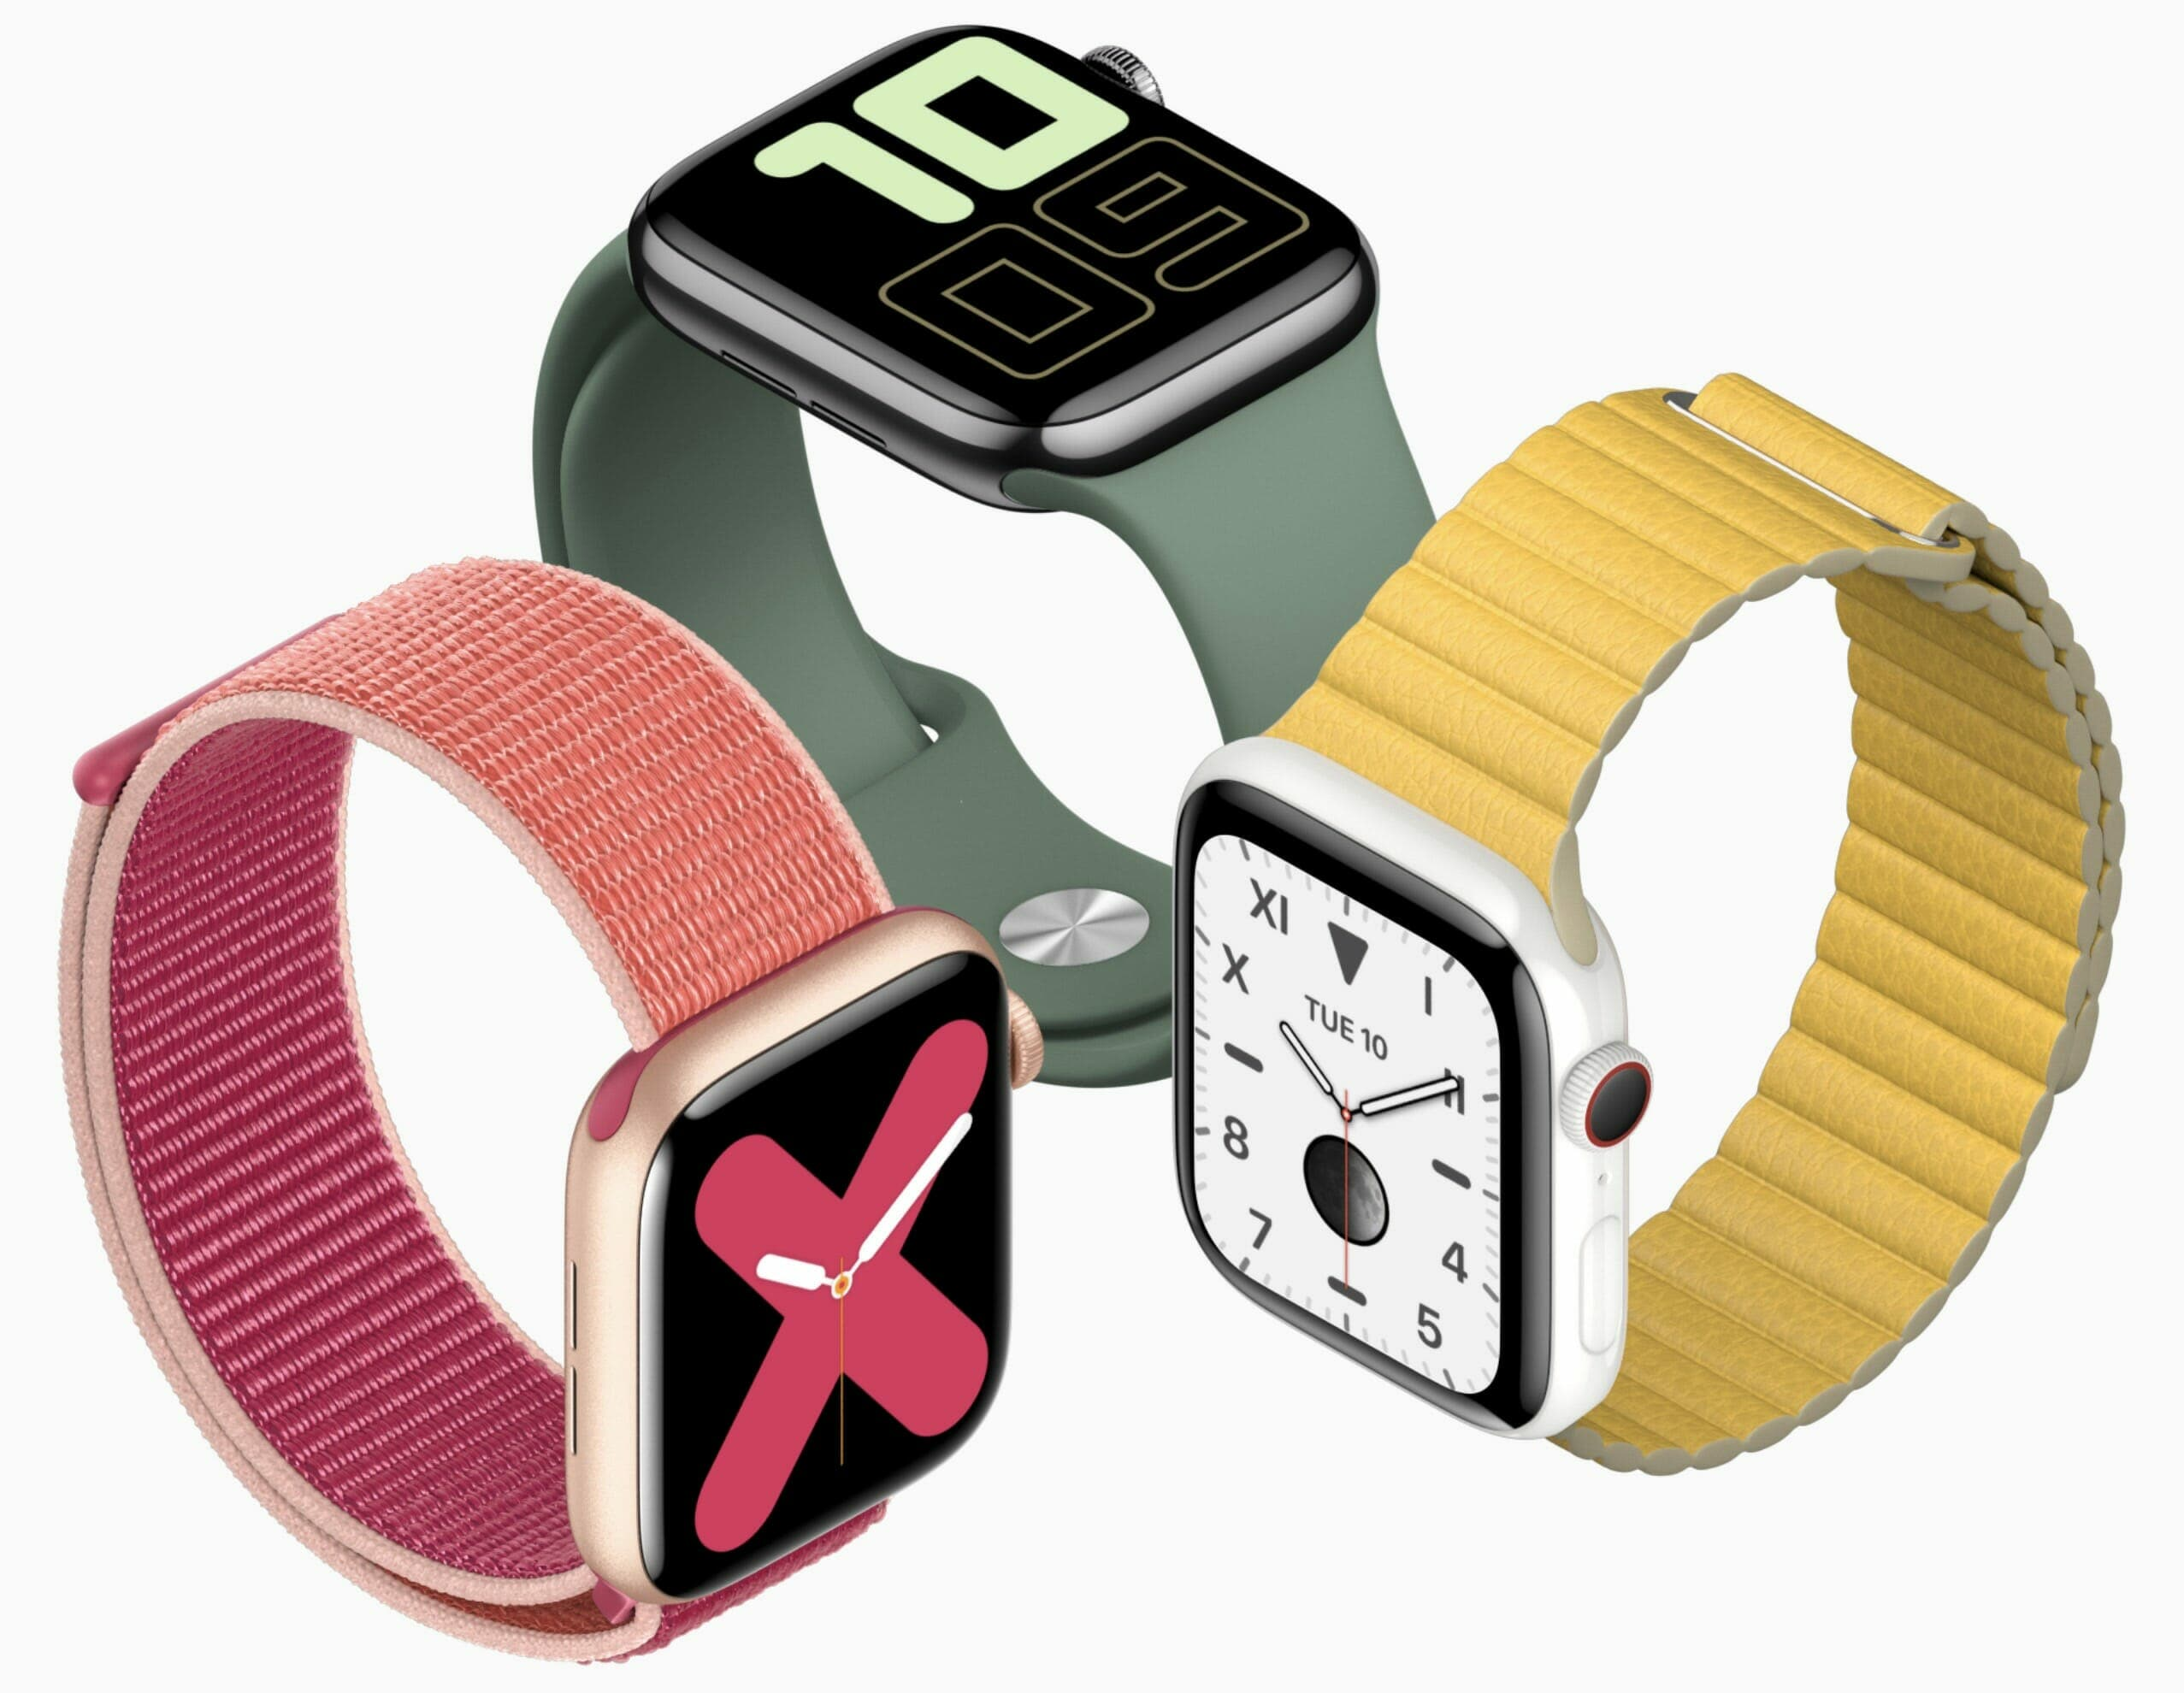 Apple Watch Series 5 - Is it worth the upgrade